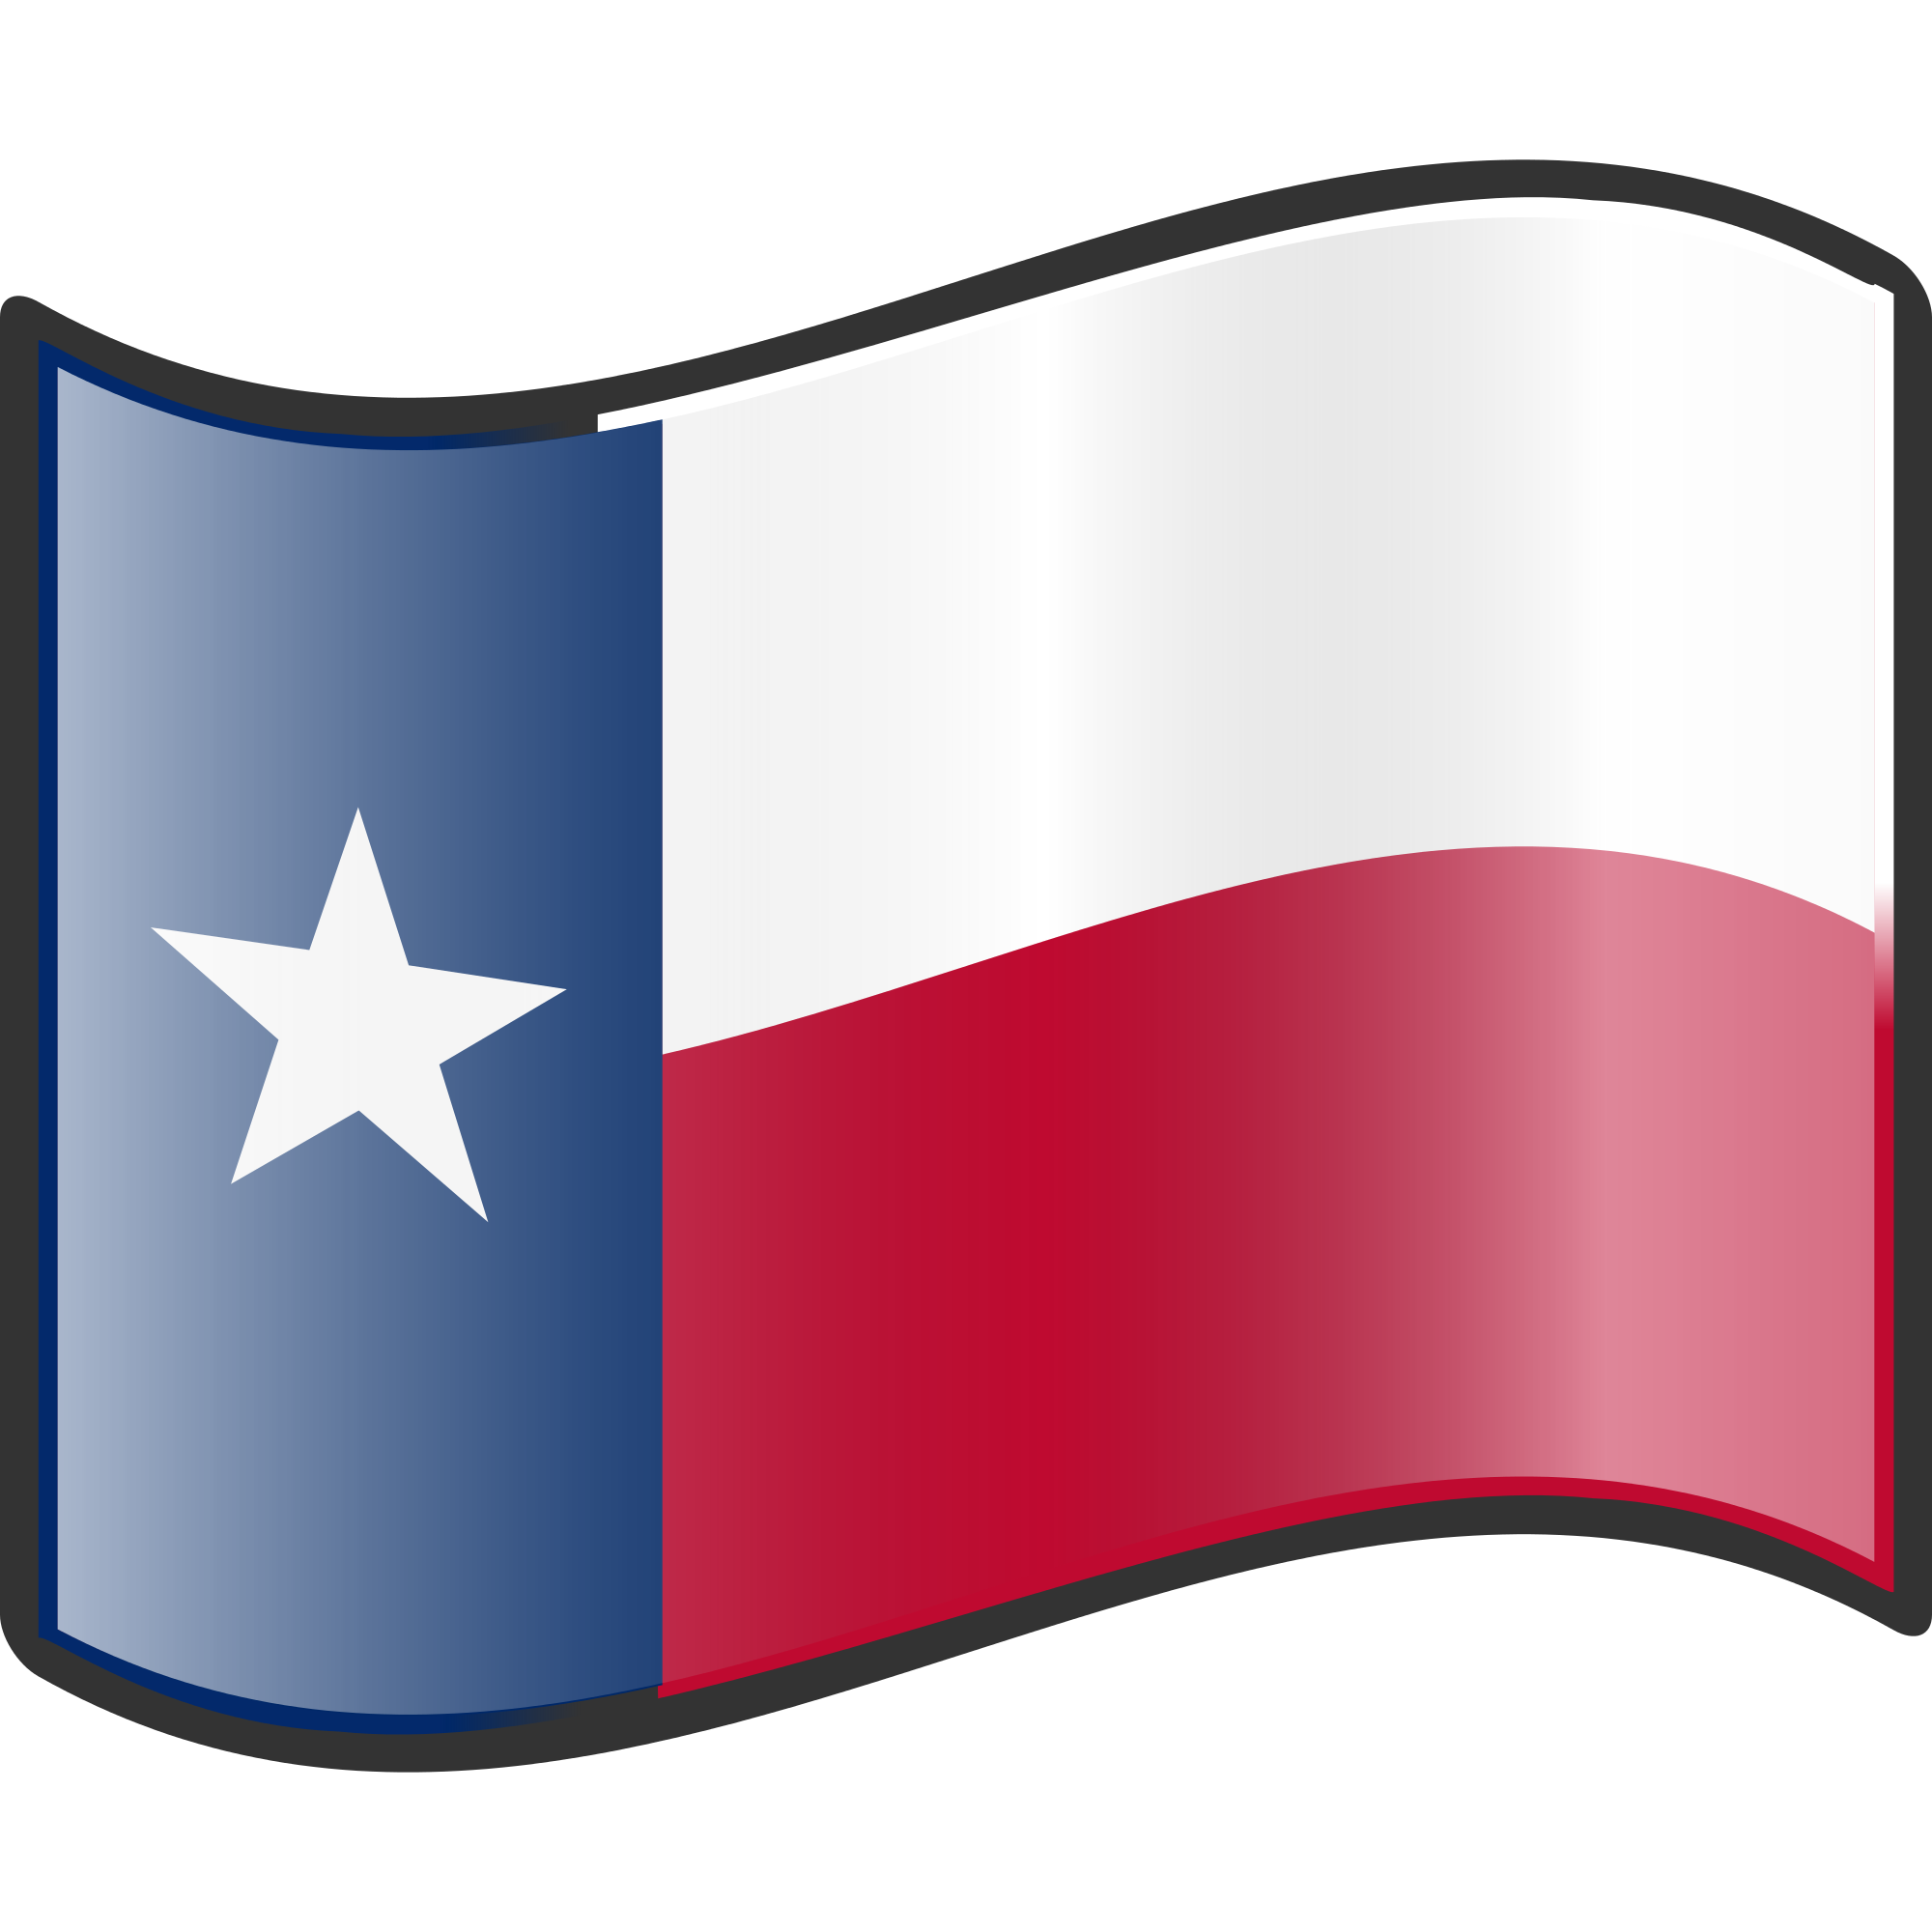 Congress clipart capitol texas. Casaa join us in